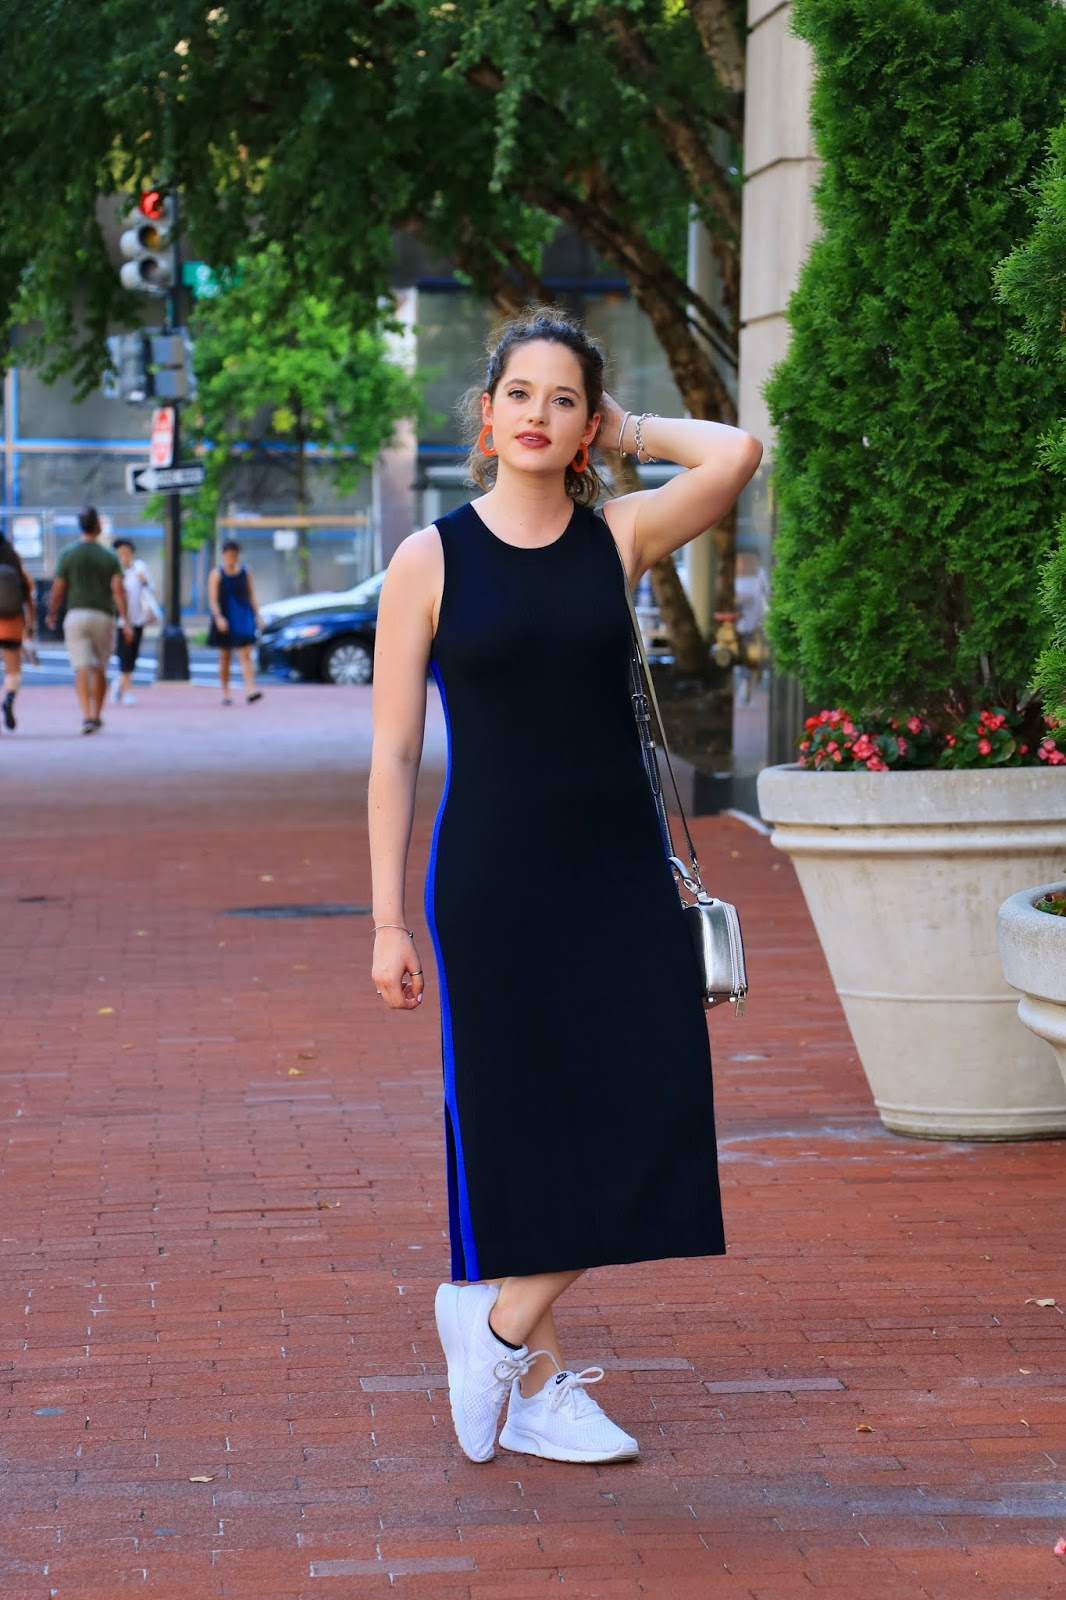 Nyc fashion blogger Kathleen Harper wearing a midi dress and sneakers outfit.